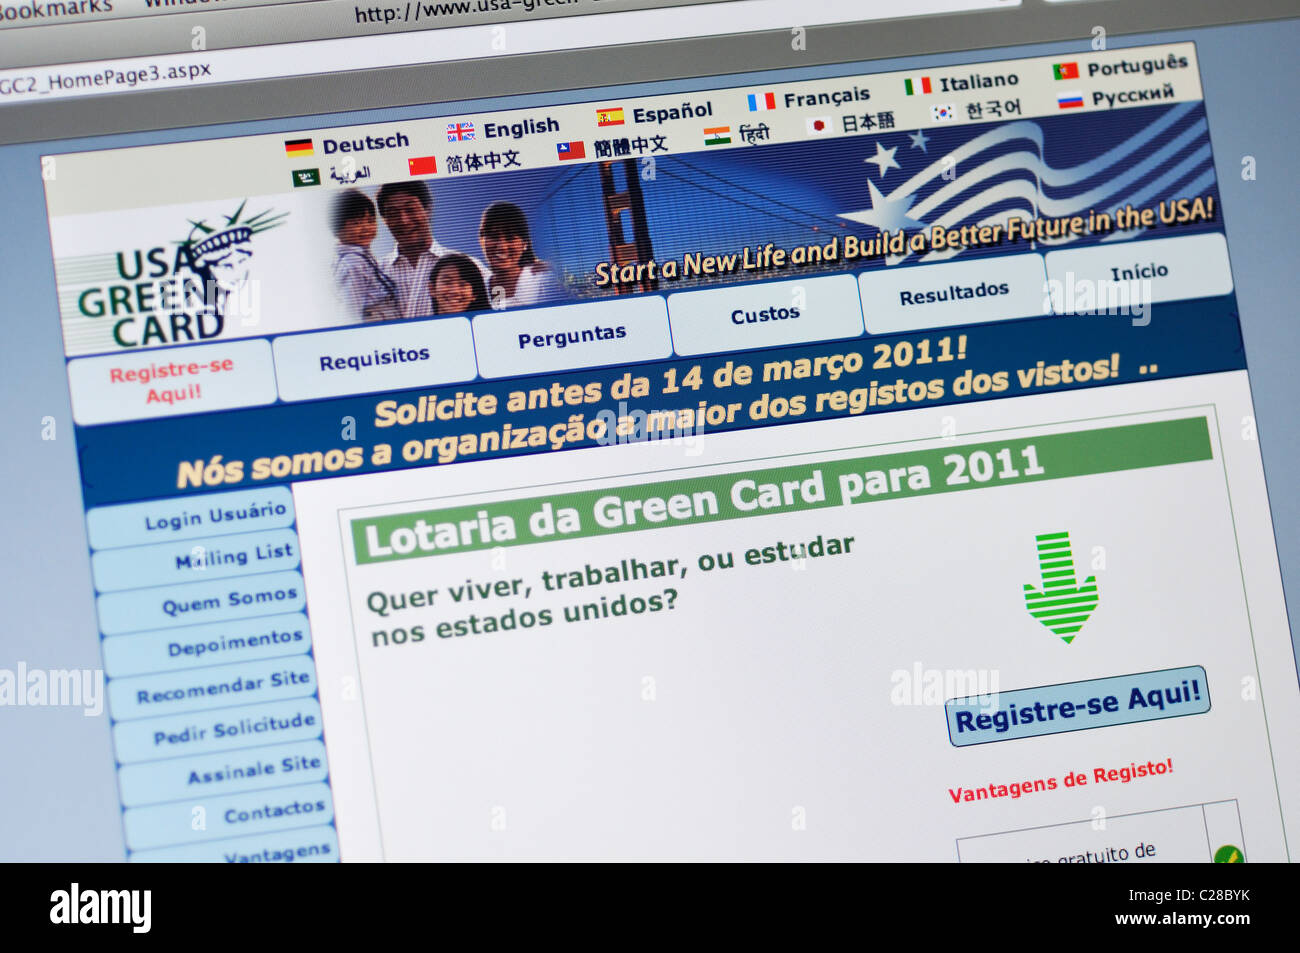 USA Green Card Lottery website - in Portuguese Stock Photo